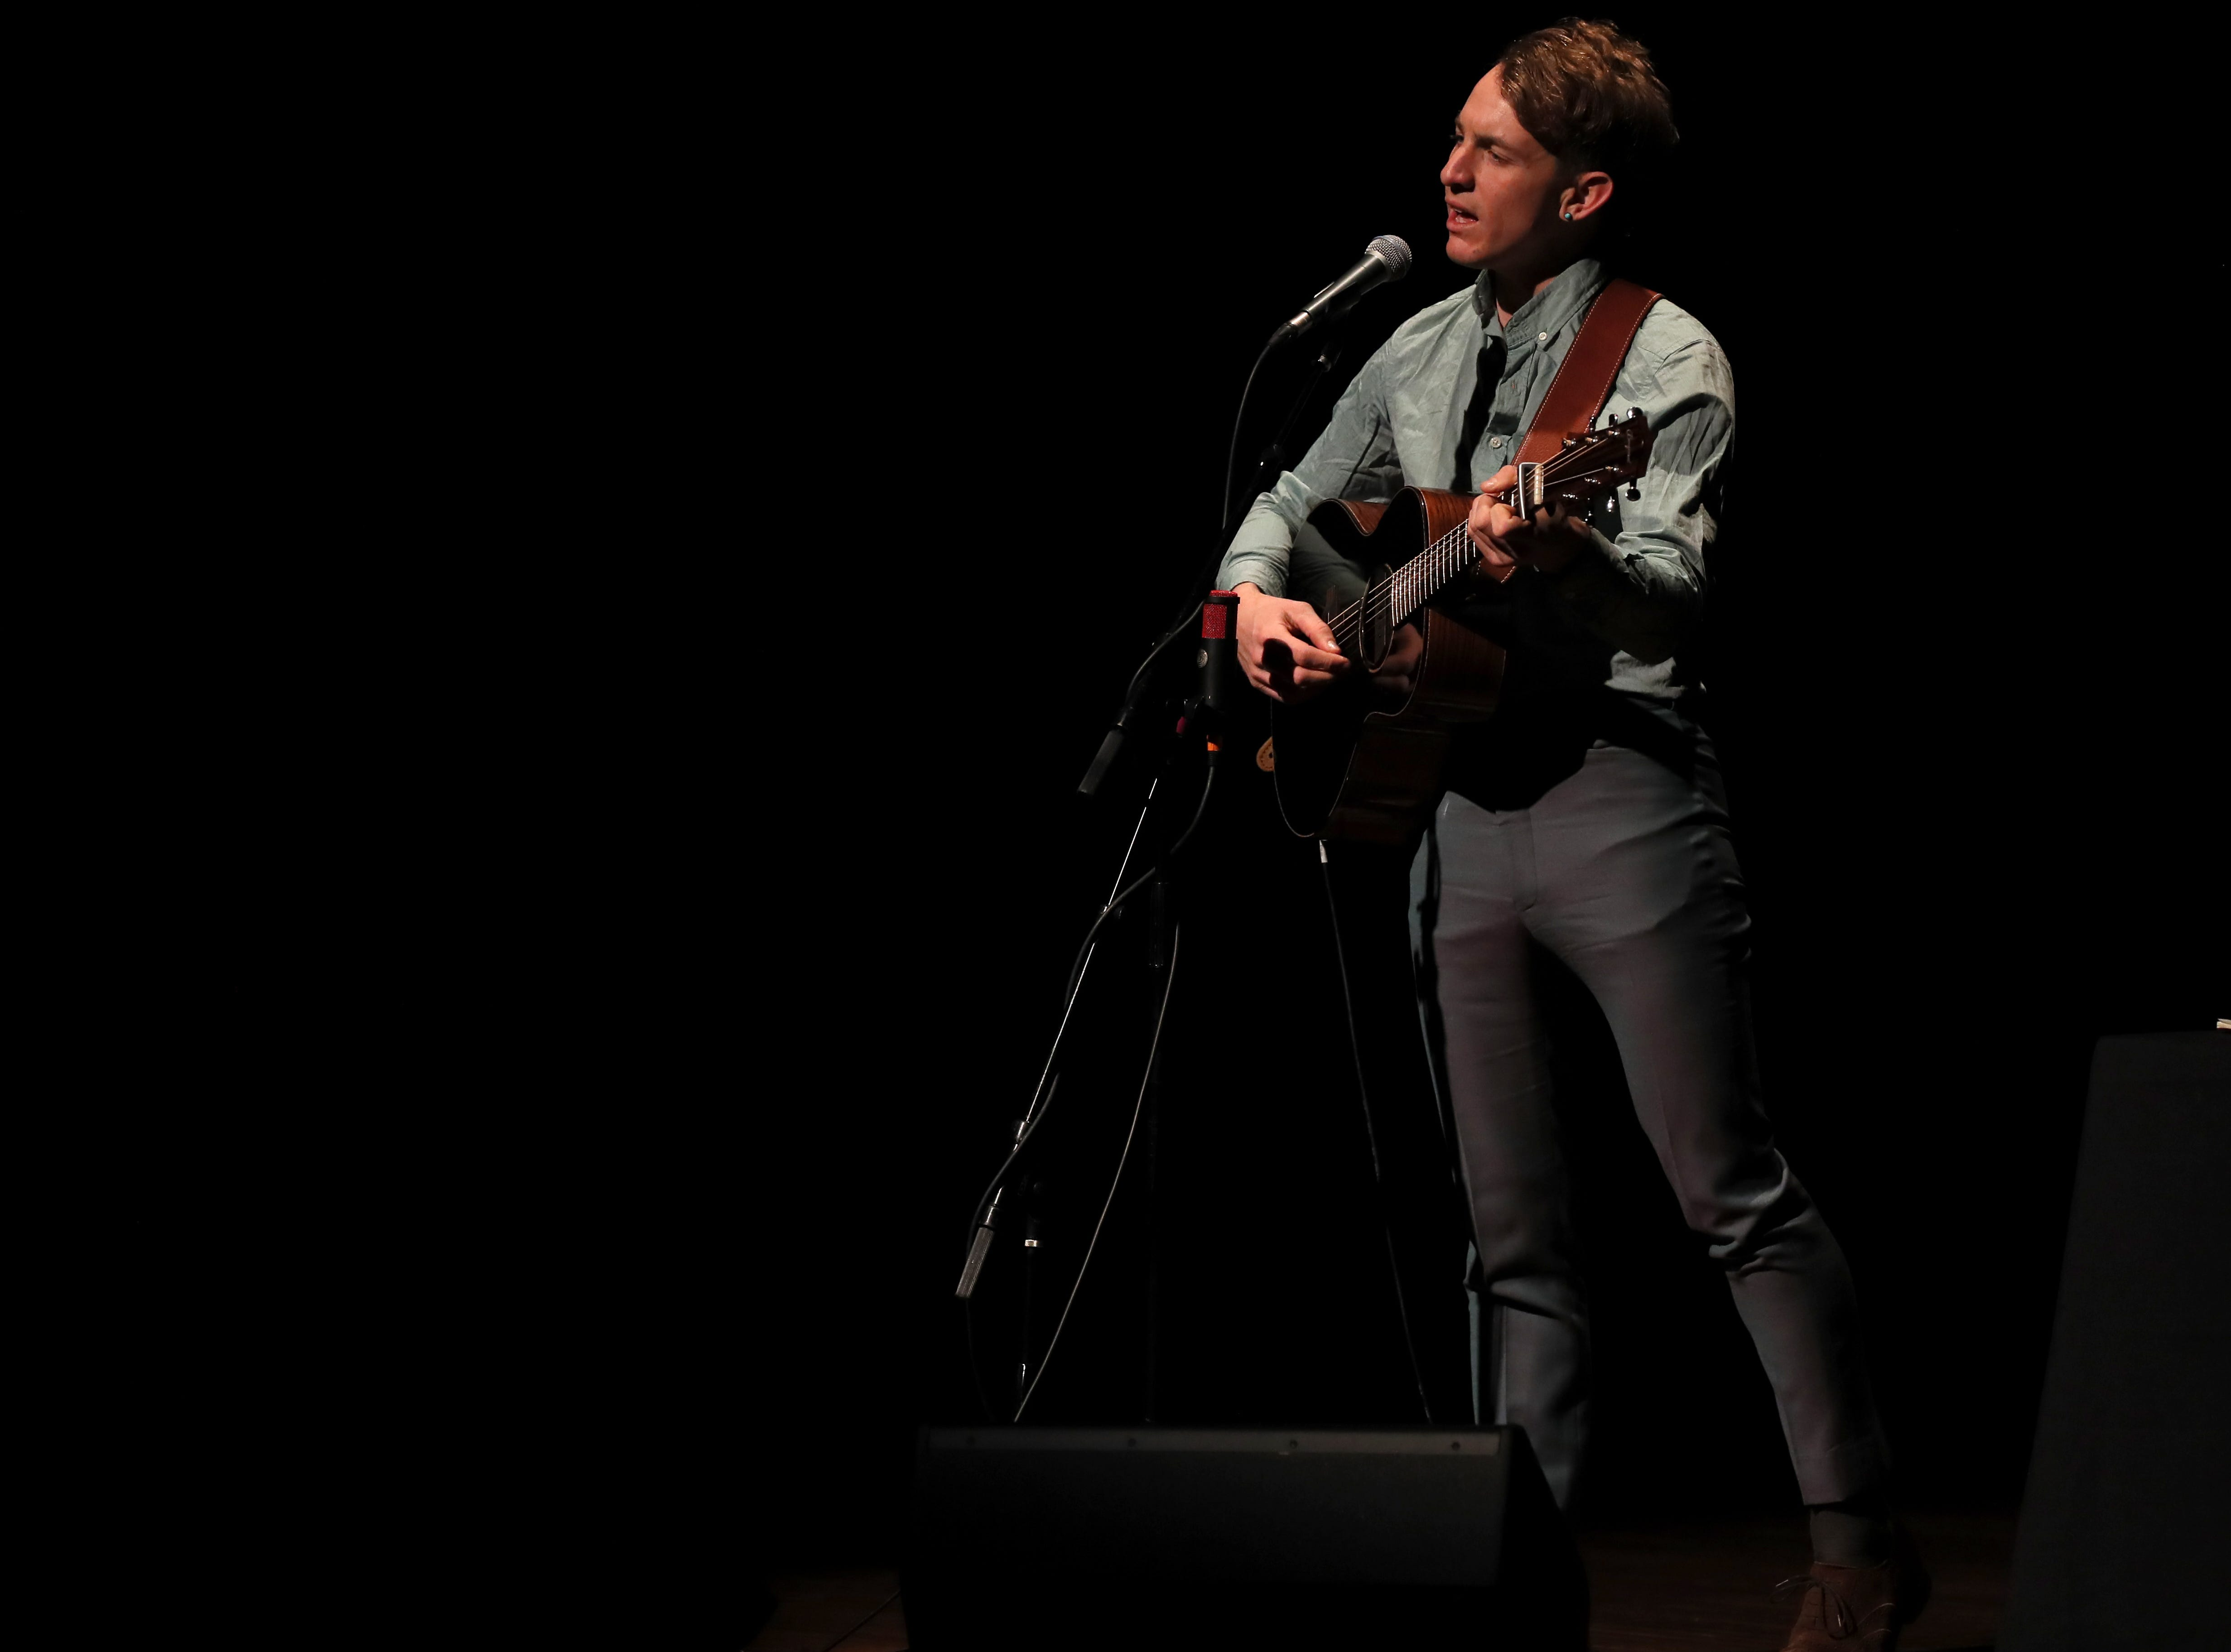 Buck Meek opens for Jeff Tweedy at the Germantown Performing Arts Center on Thursday, March 7, 2019.